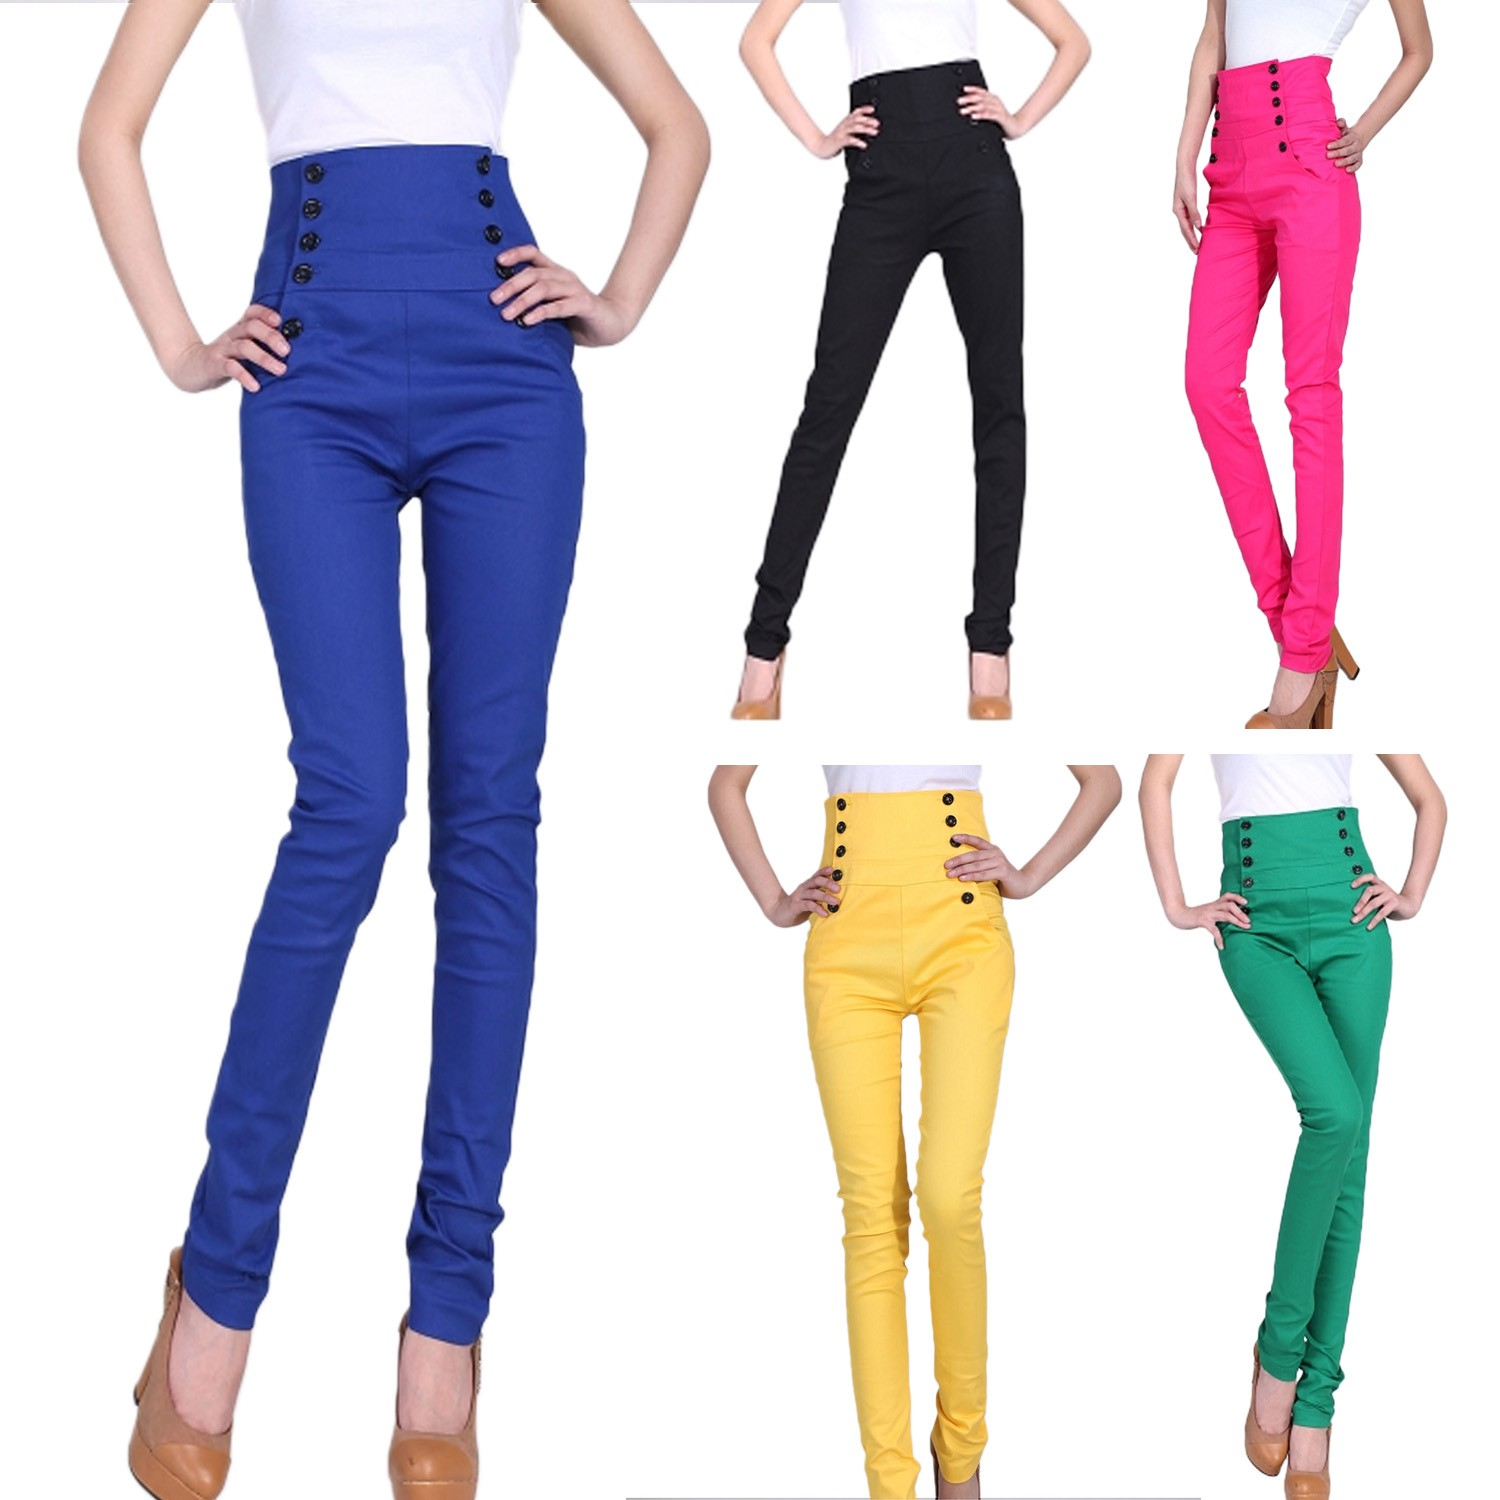 Hippie Vintage Ladies Womens High Waist Buttons Jeans Pants AU 6 8 10 12 14